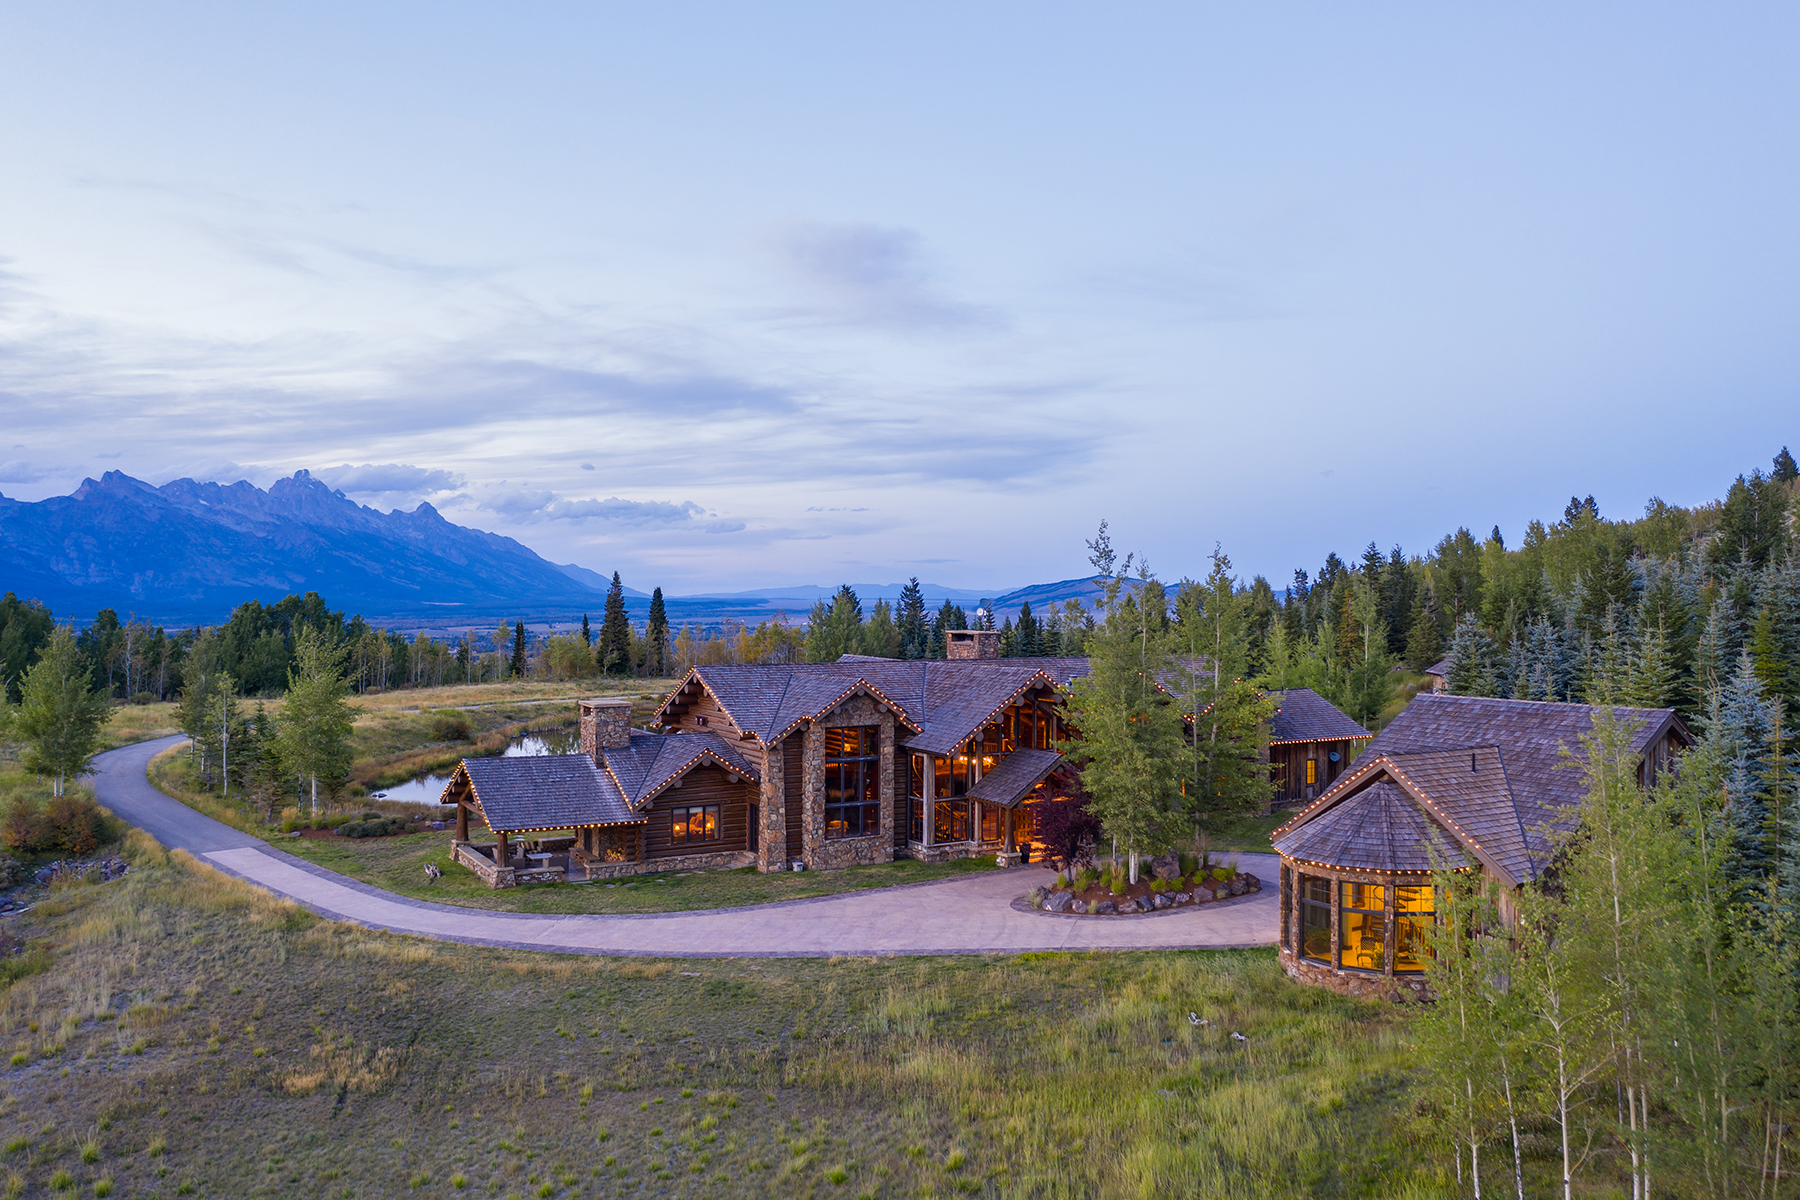 Single Family Homes for Active at Riva Ridge Retreat, Residence of Western Grandeur 3000 Riva Ridge Road Jackson, Wyoming 83001 United States